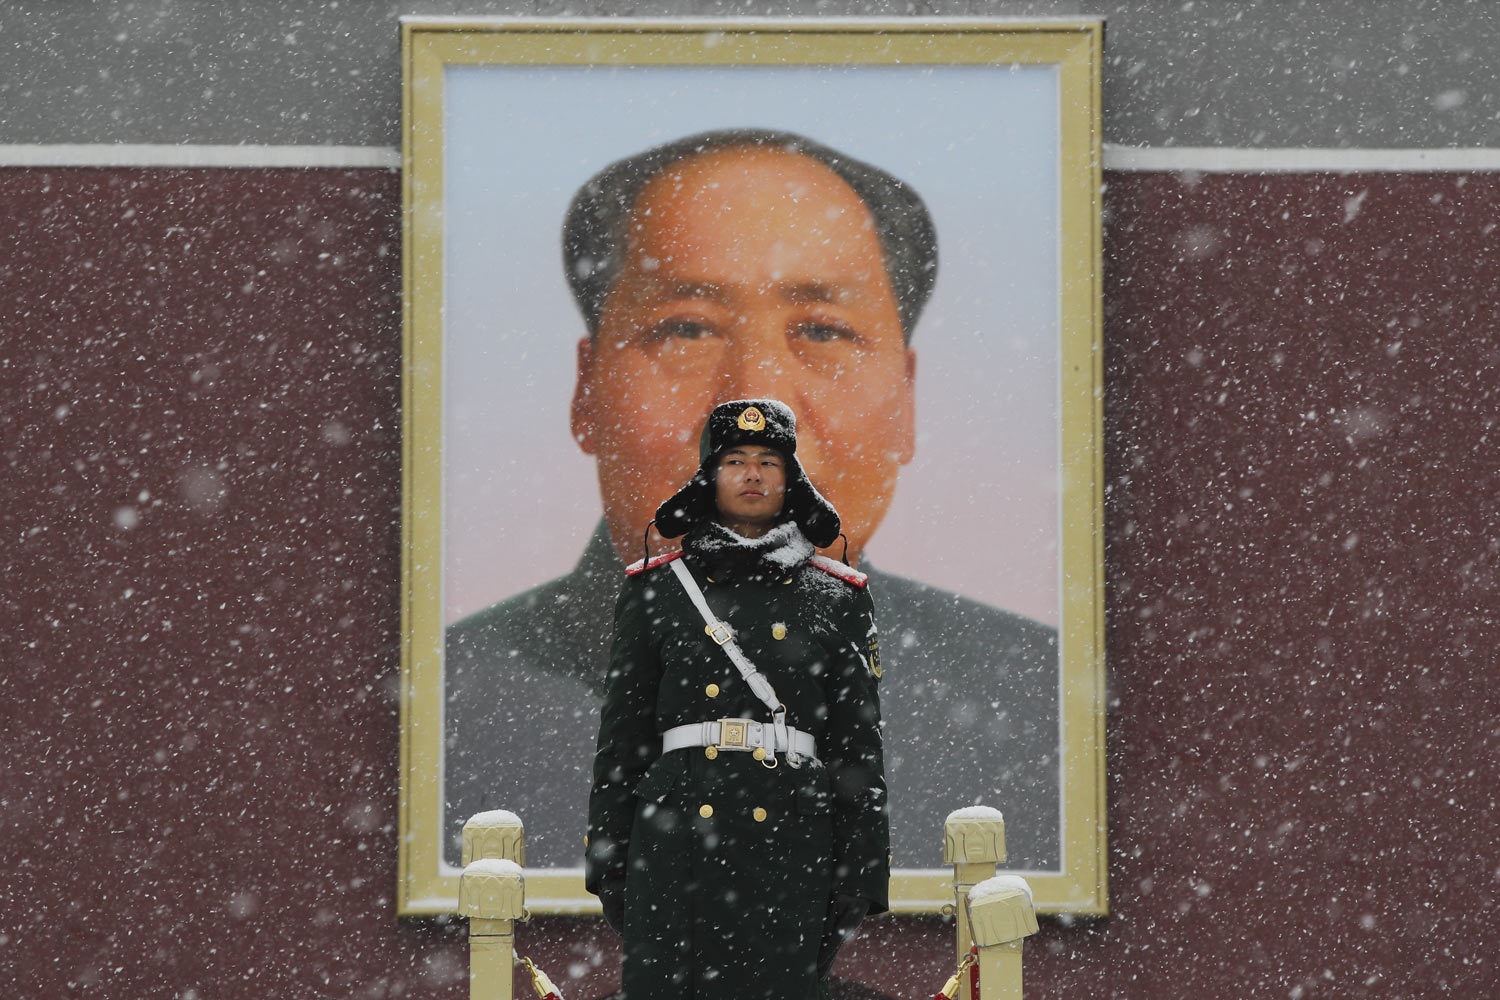 A paramilitary police officer stands guard under the portrait of former leader Mao Zedong outside Tiananmen Gate as snow falls in Beijing, Tuesday, Feb. 12, 2019. China's capital is mostly dry in the winter but a storm system brought snow to the city on Tuesday morning. (AP Photo/Andy Wong)